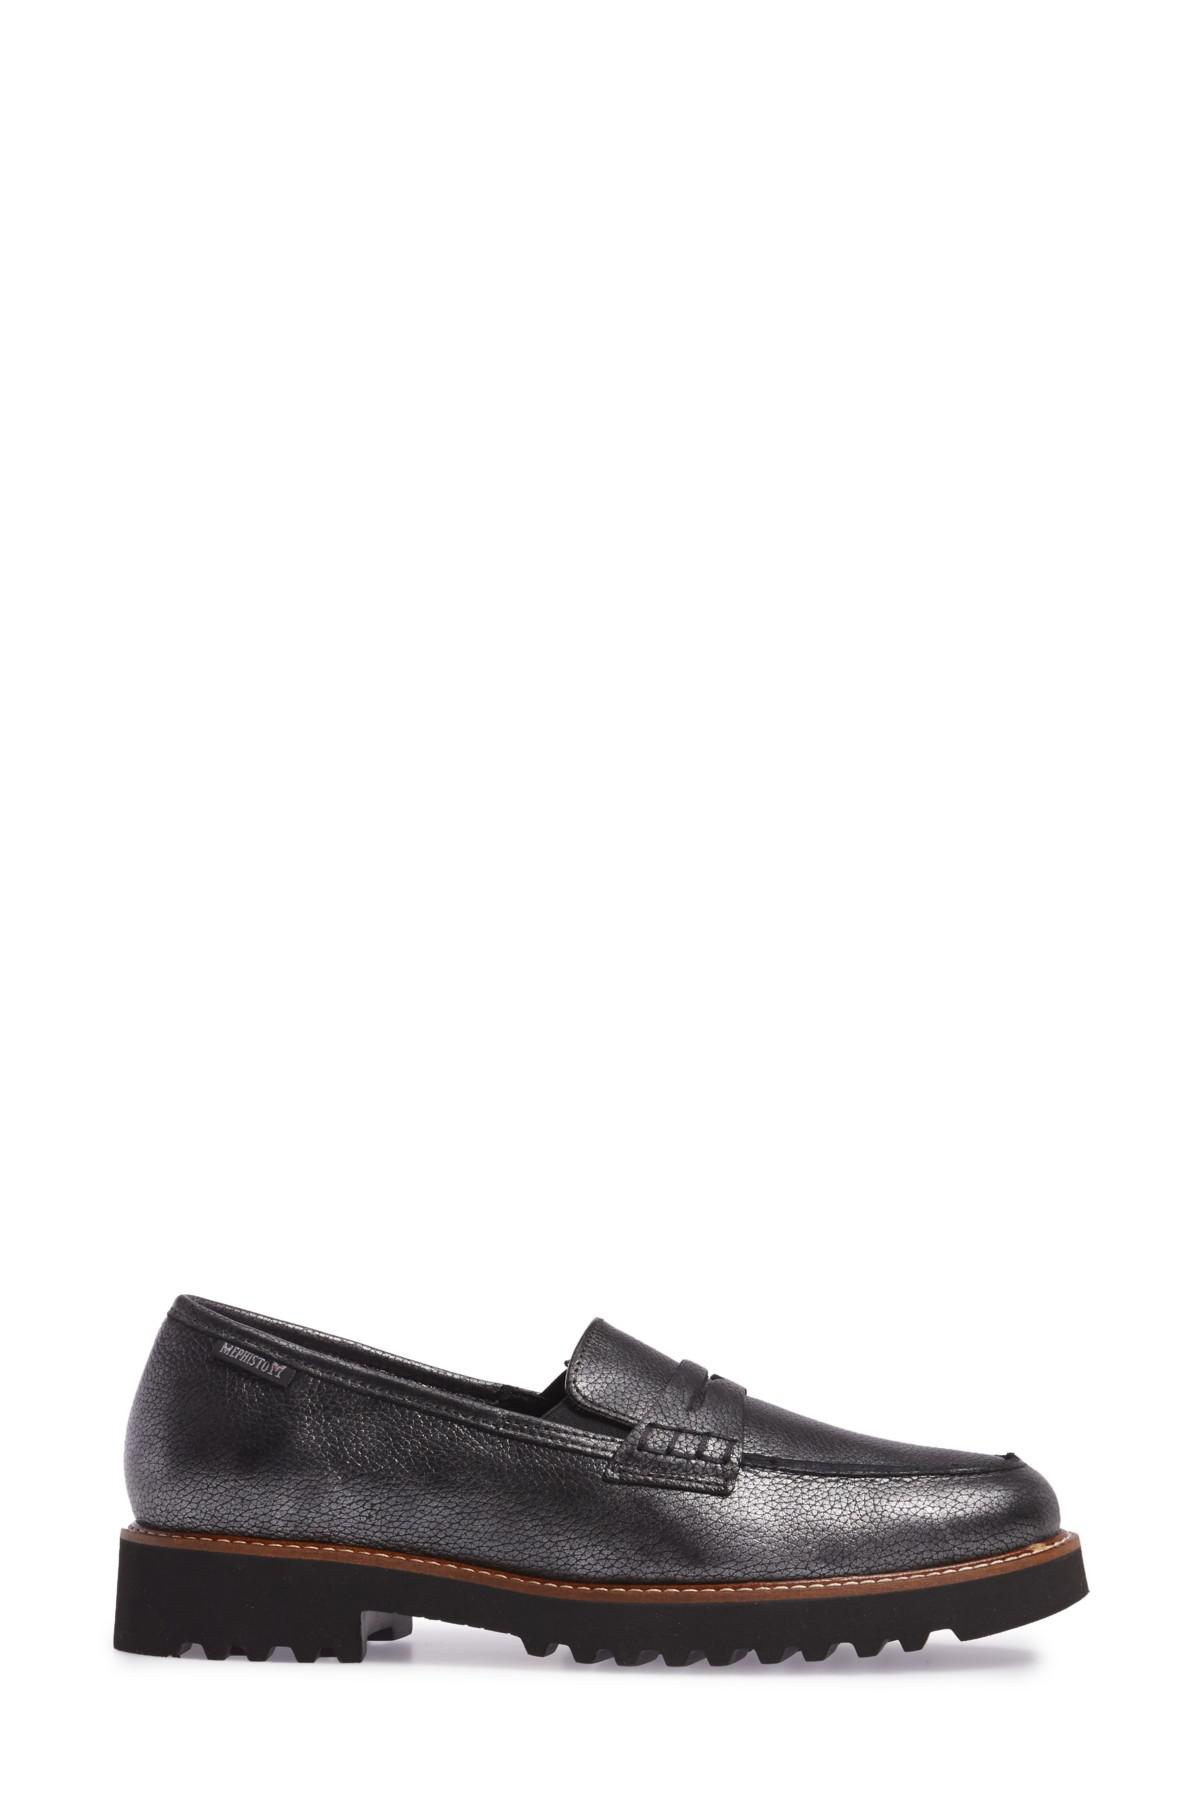 Mephisto Sidney Penny Loafers in Black